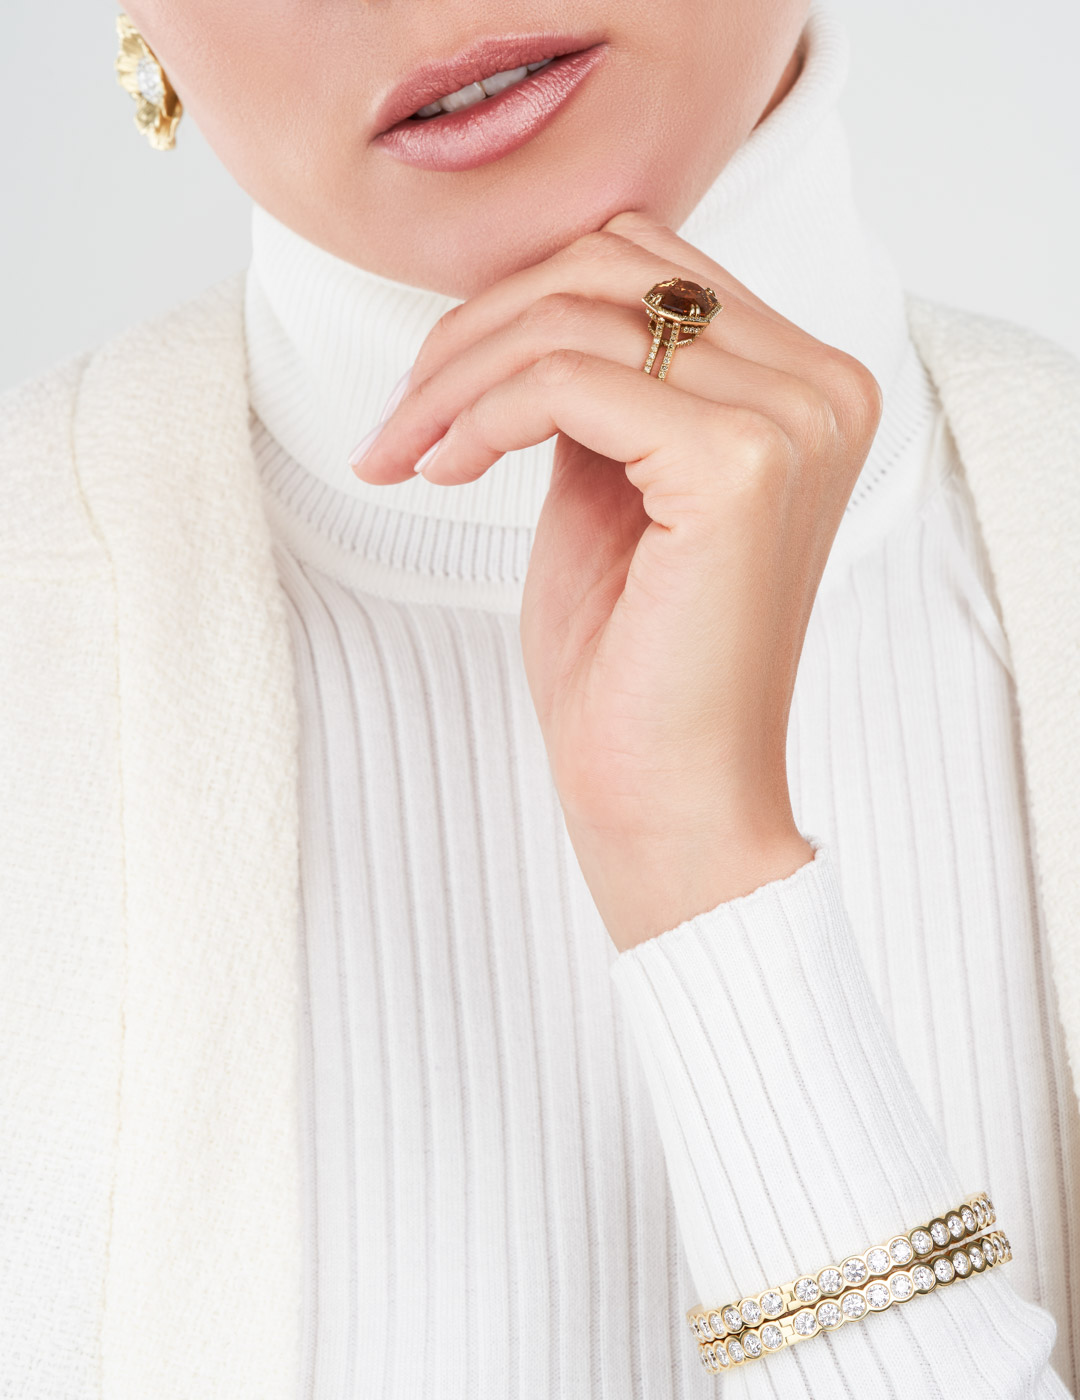 mish_products_rings_Arden-Plychrm Tourm-Ring-3